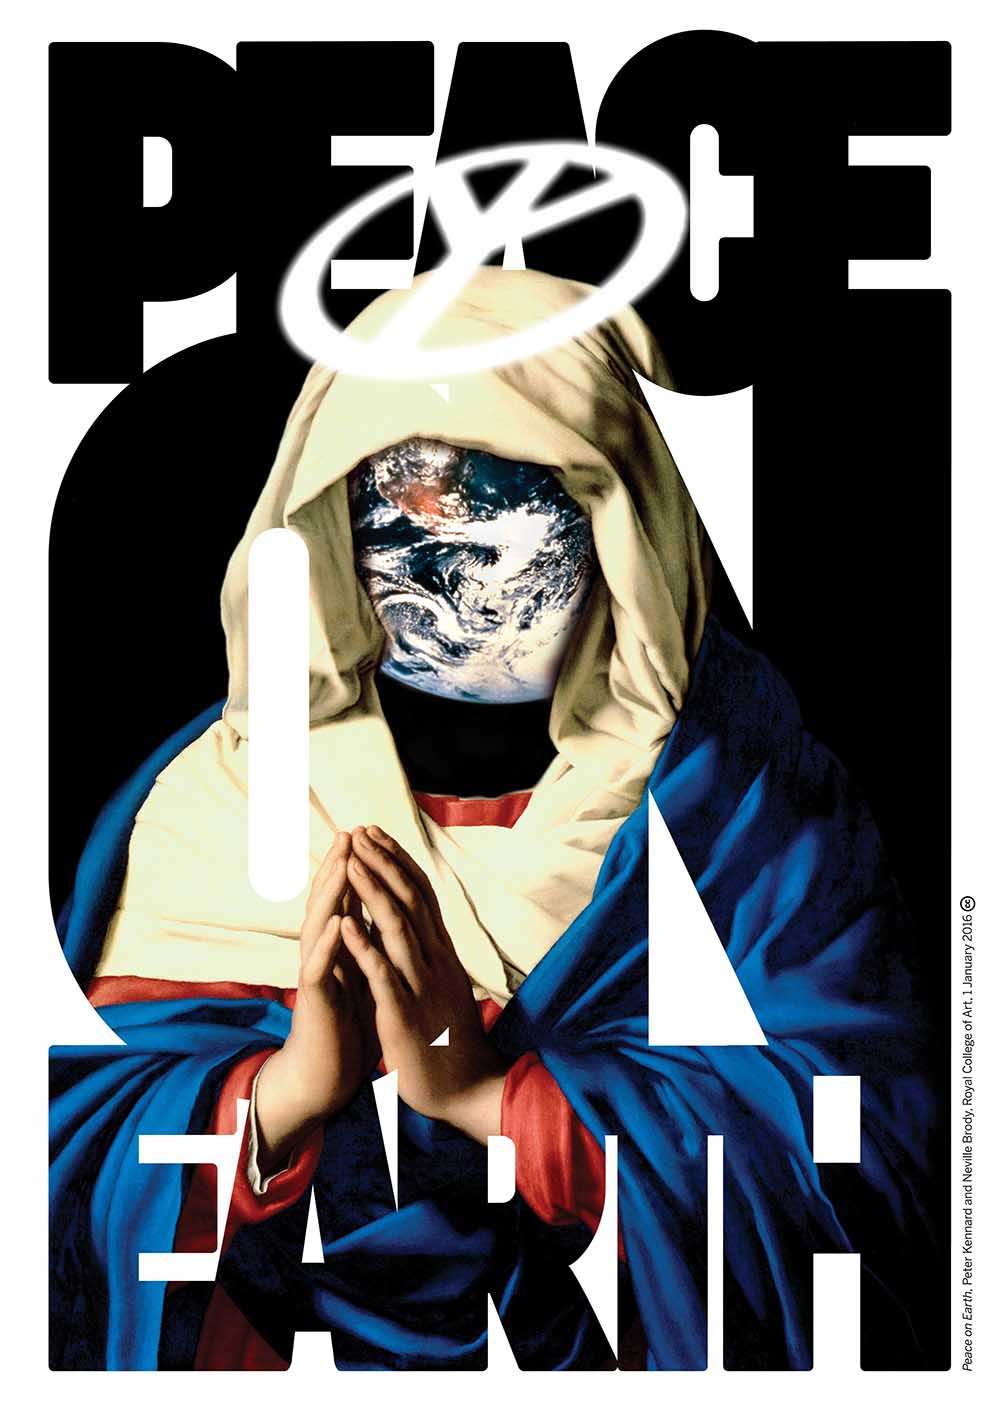 Peace on Earth - Photomontage with typographyby Neville BrodyDigital print2003 - 2016First published:The Guardian, 1st January 2016